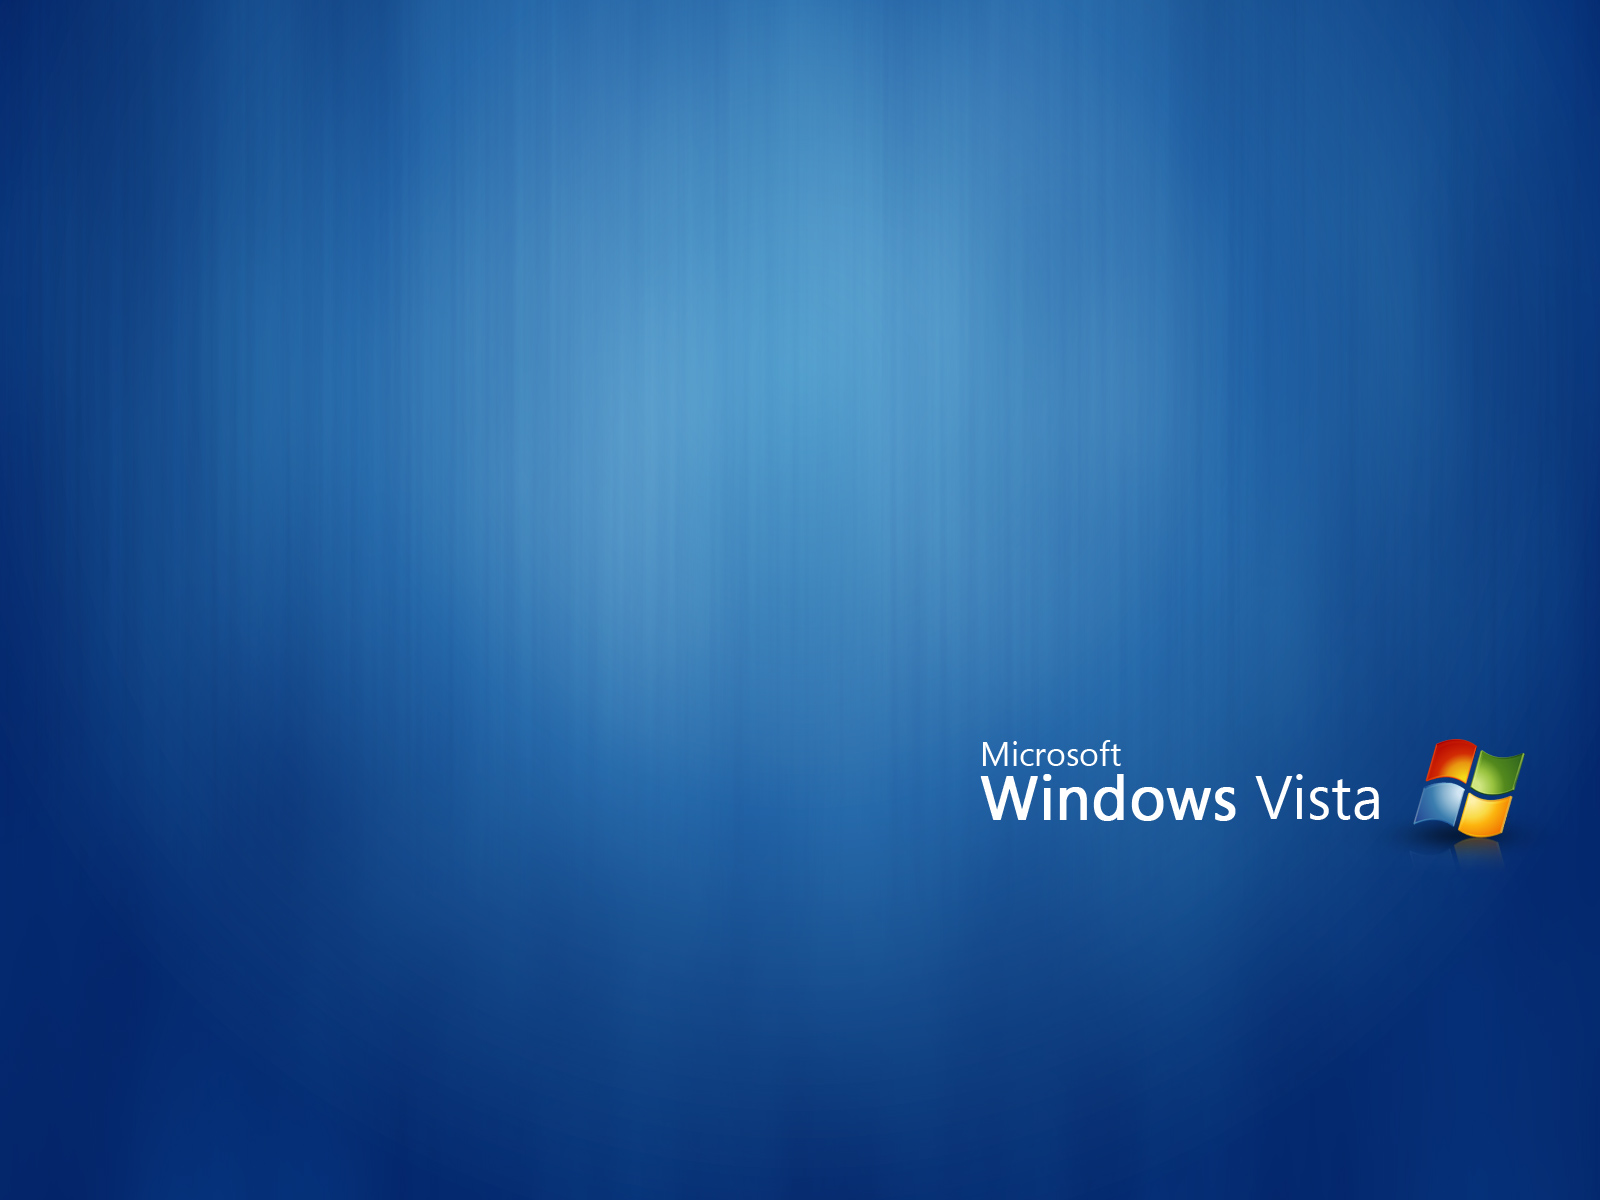 vista wallpapers vista home windows vista wallpapers